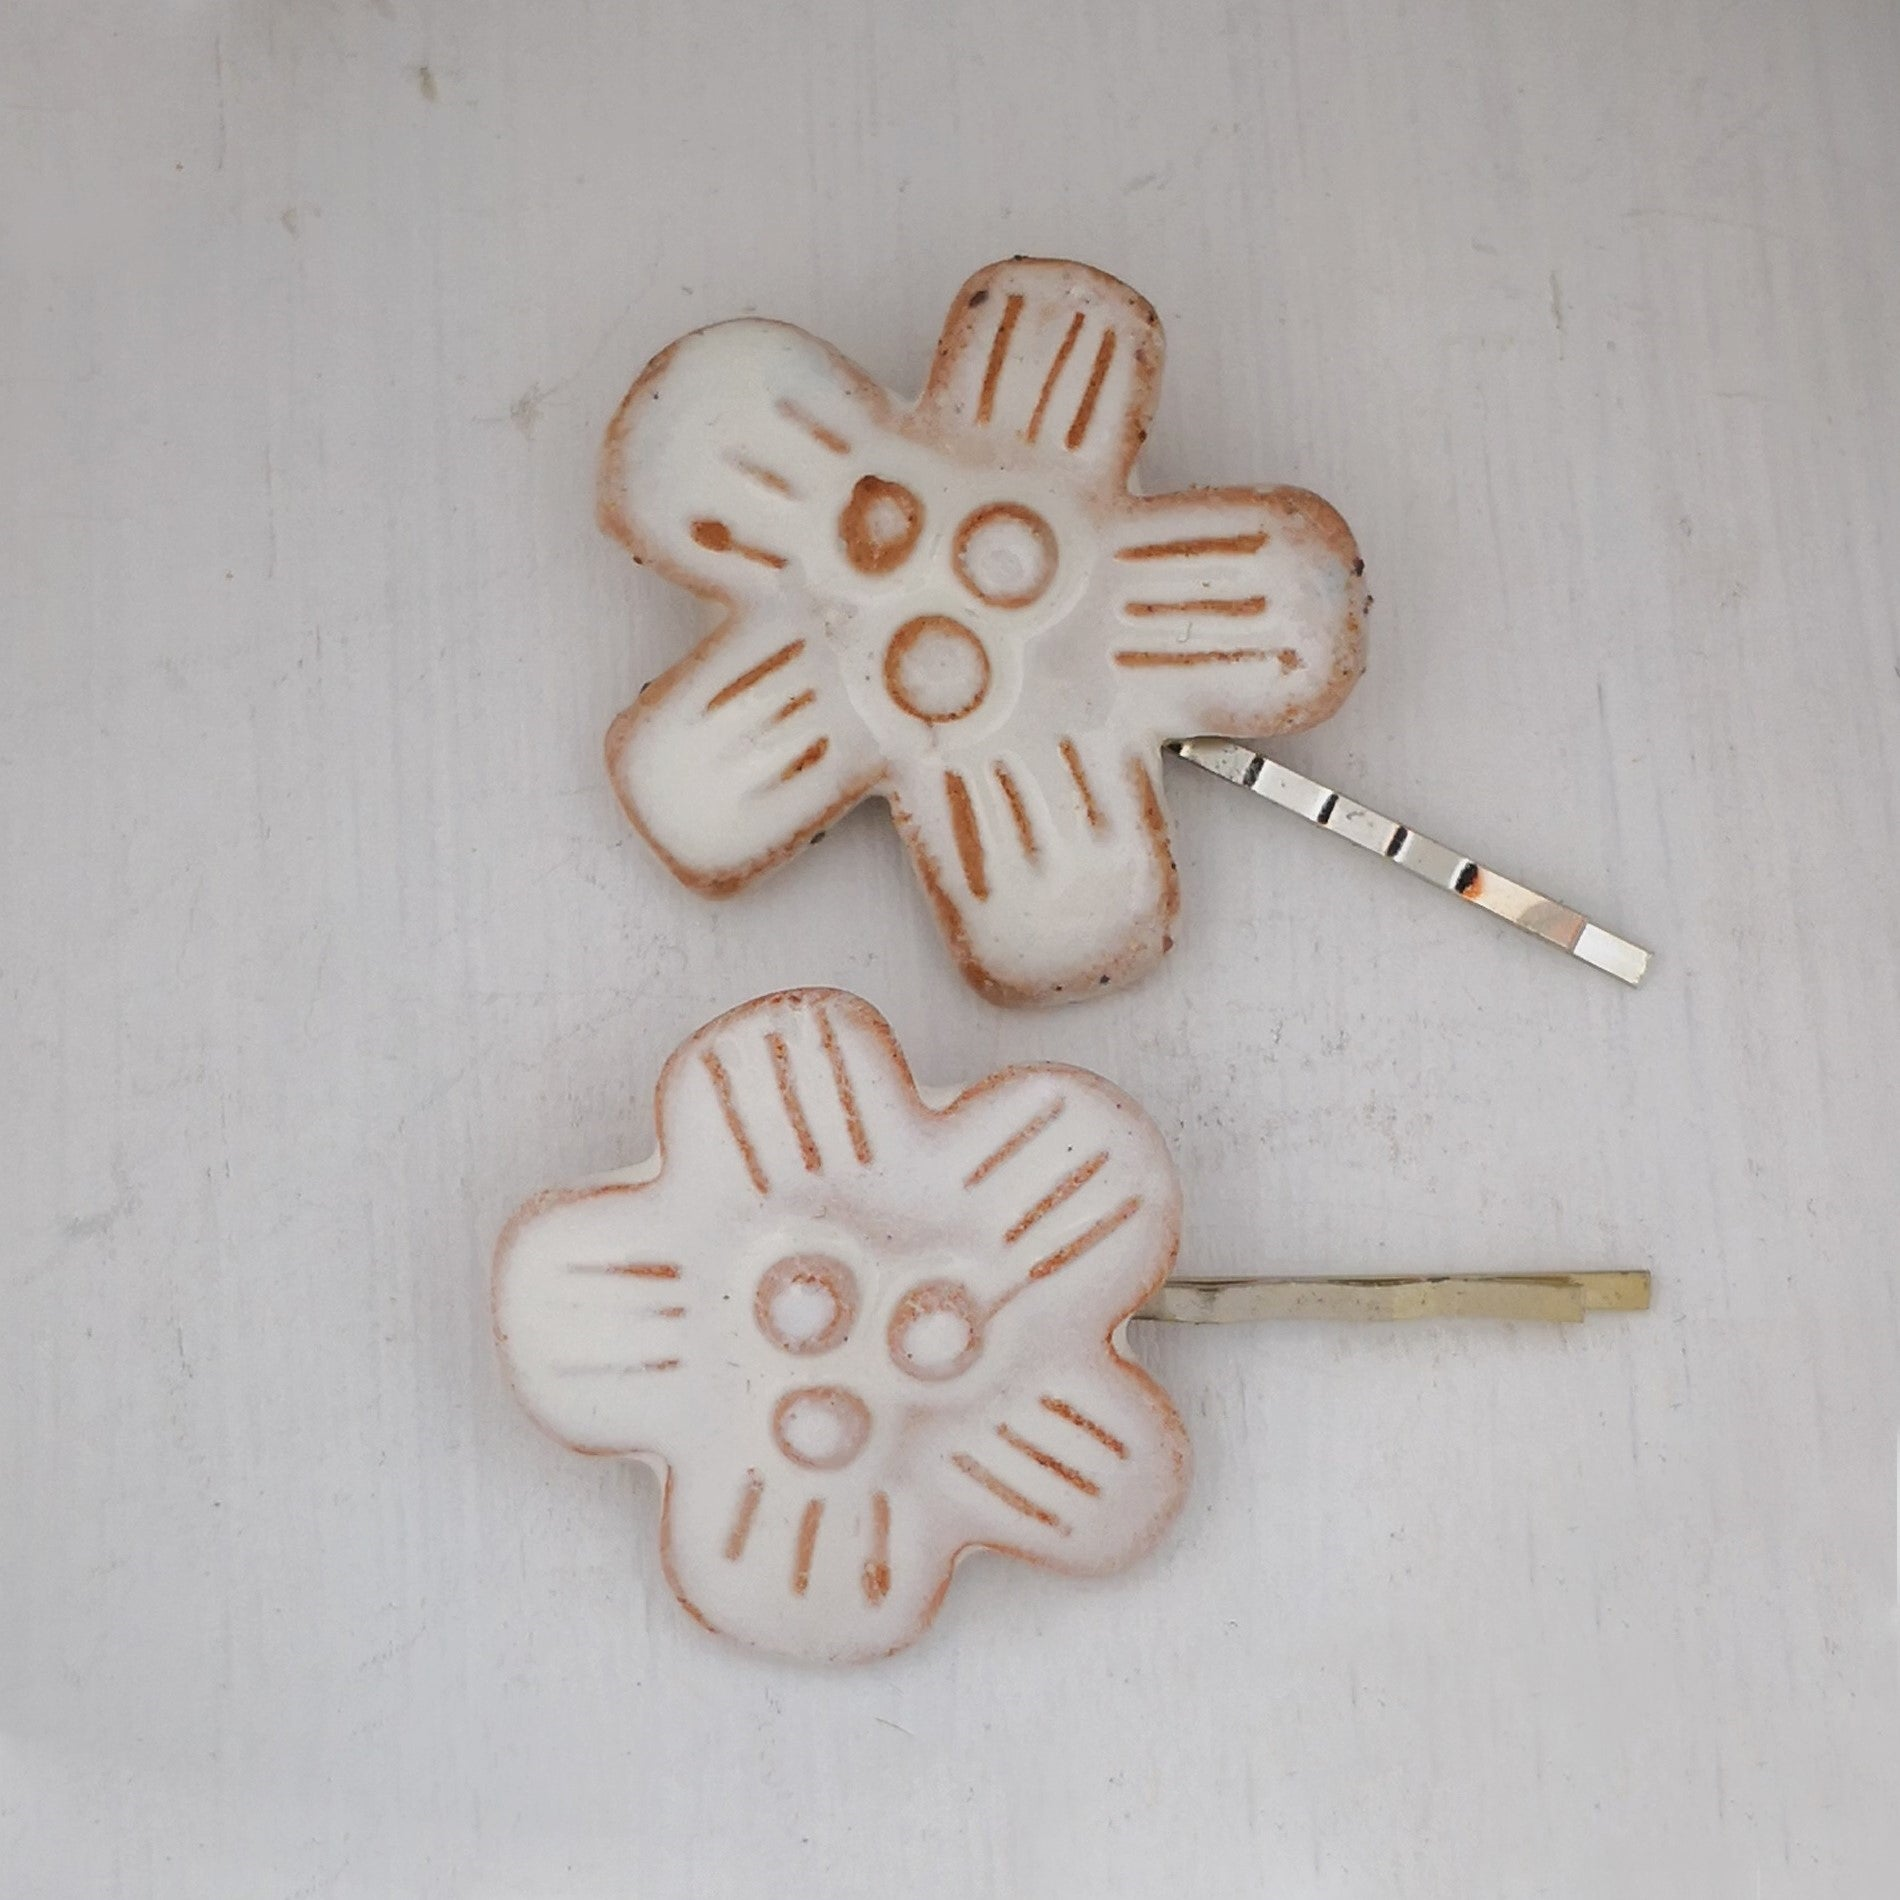 Two handmade ceramic hair clips by NZ jeweller Marita Green. White glazed ceramic flowers on metal hair slides.